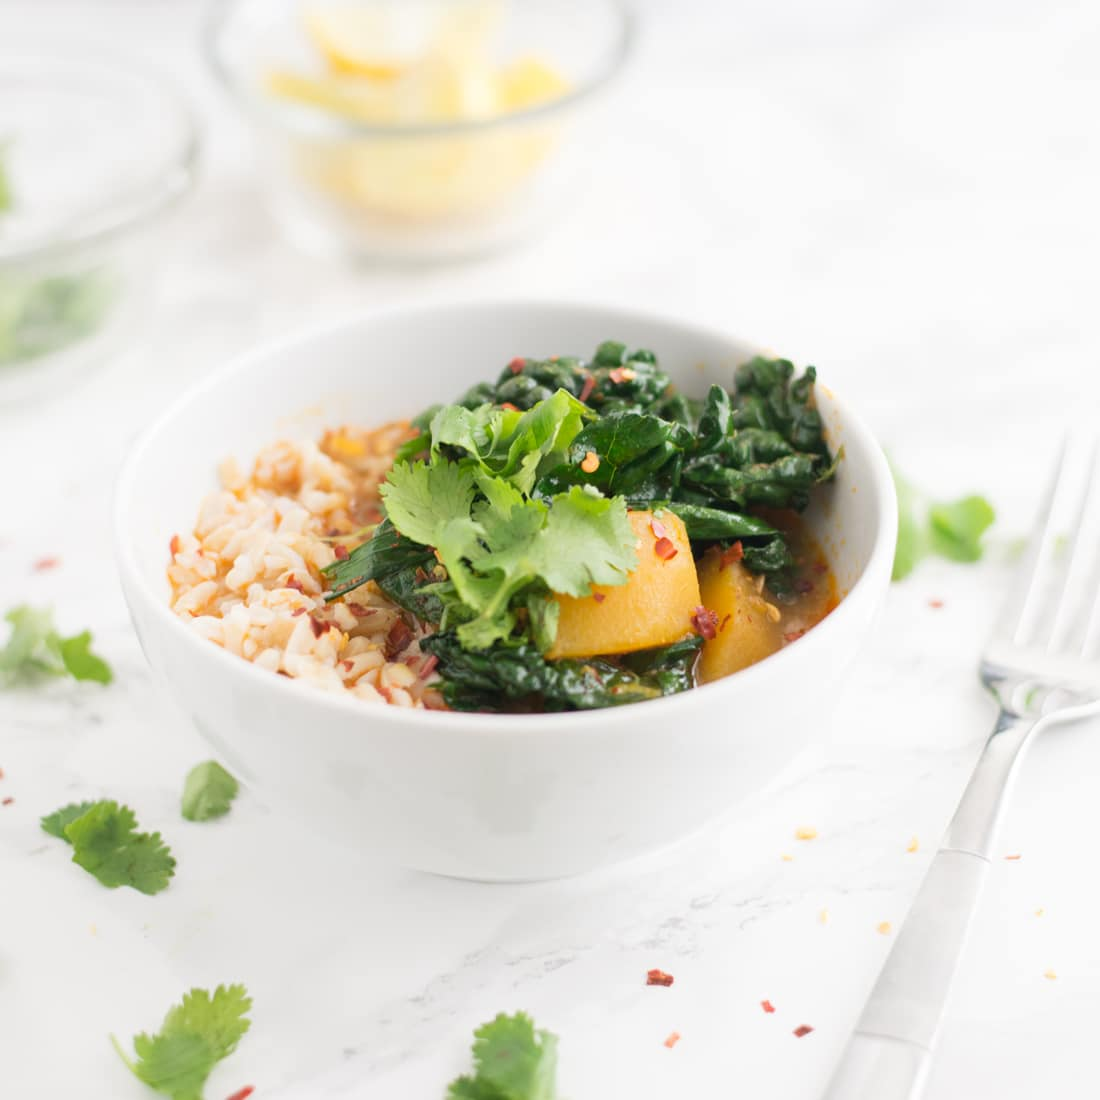 Crockpot Butternut Squash Thai Curry (Vegan)